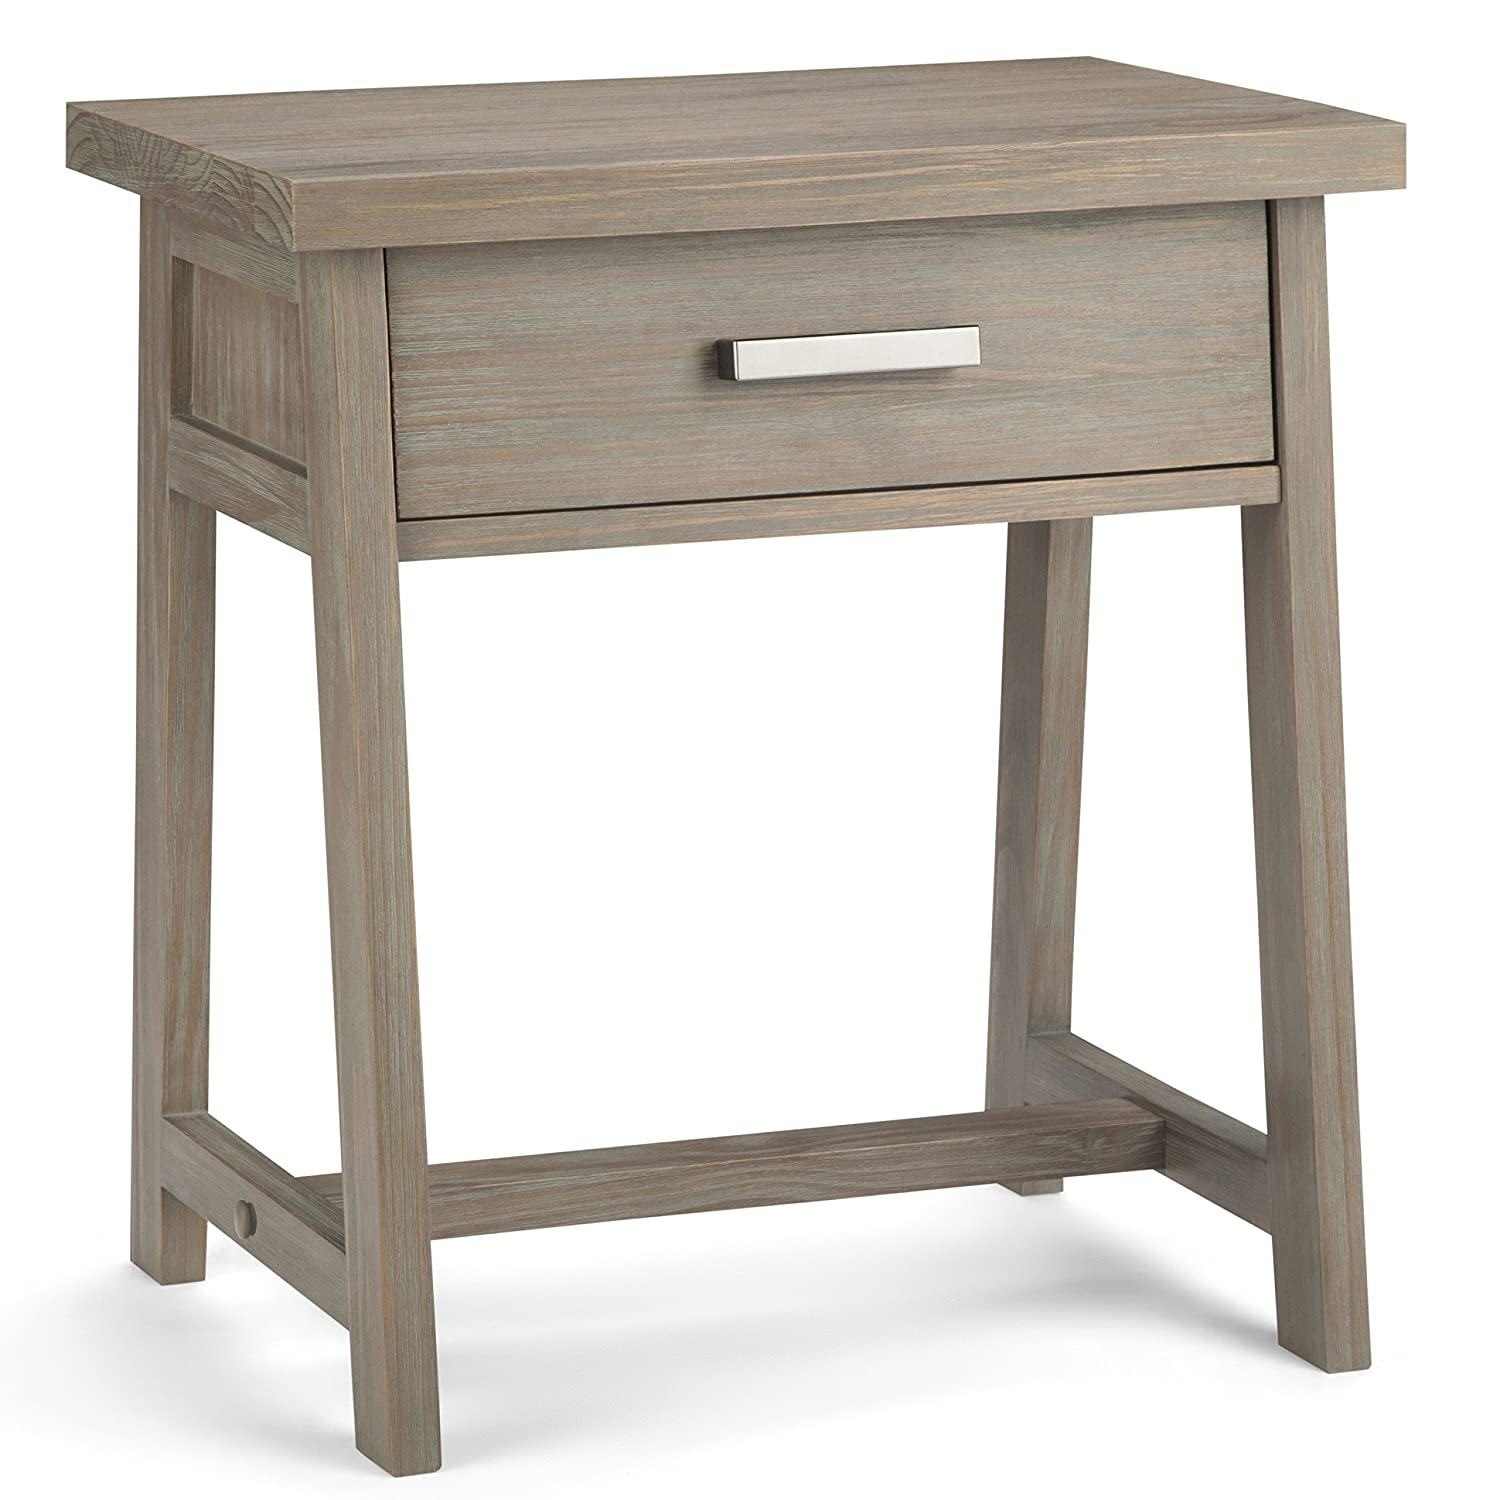 Simpli Home AXCSAW-BS-GR Sawhorse Solid Wood Modern Industrial Bedside Table in Distressed Grey